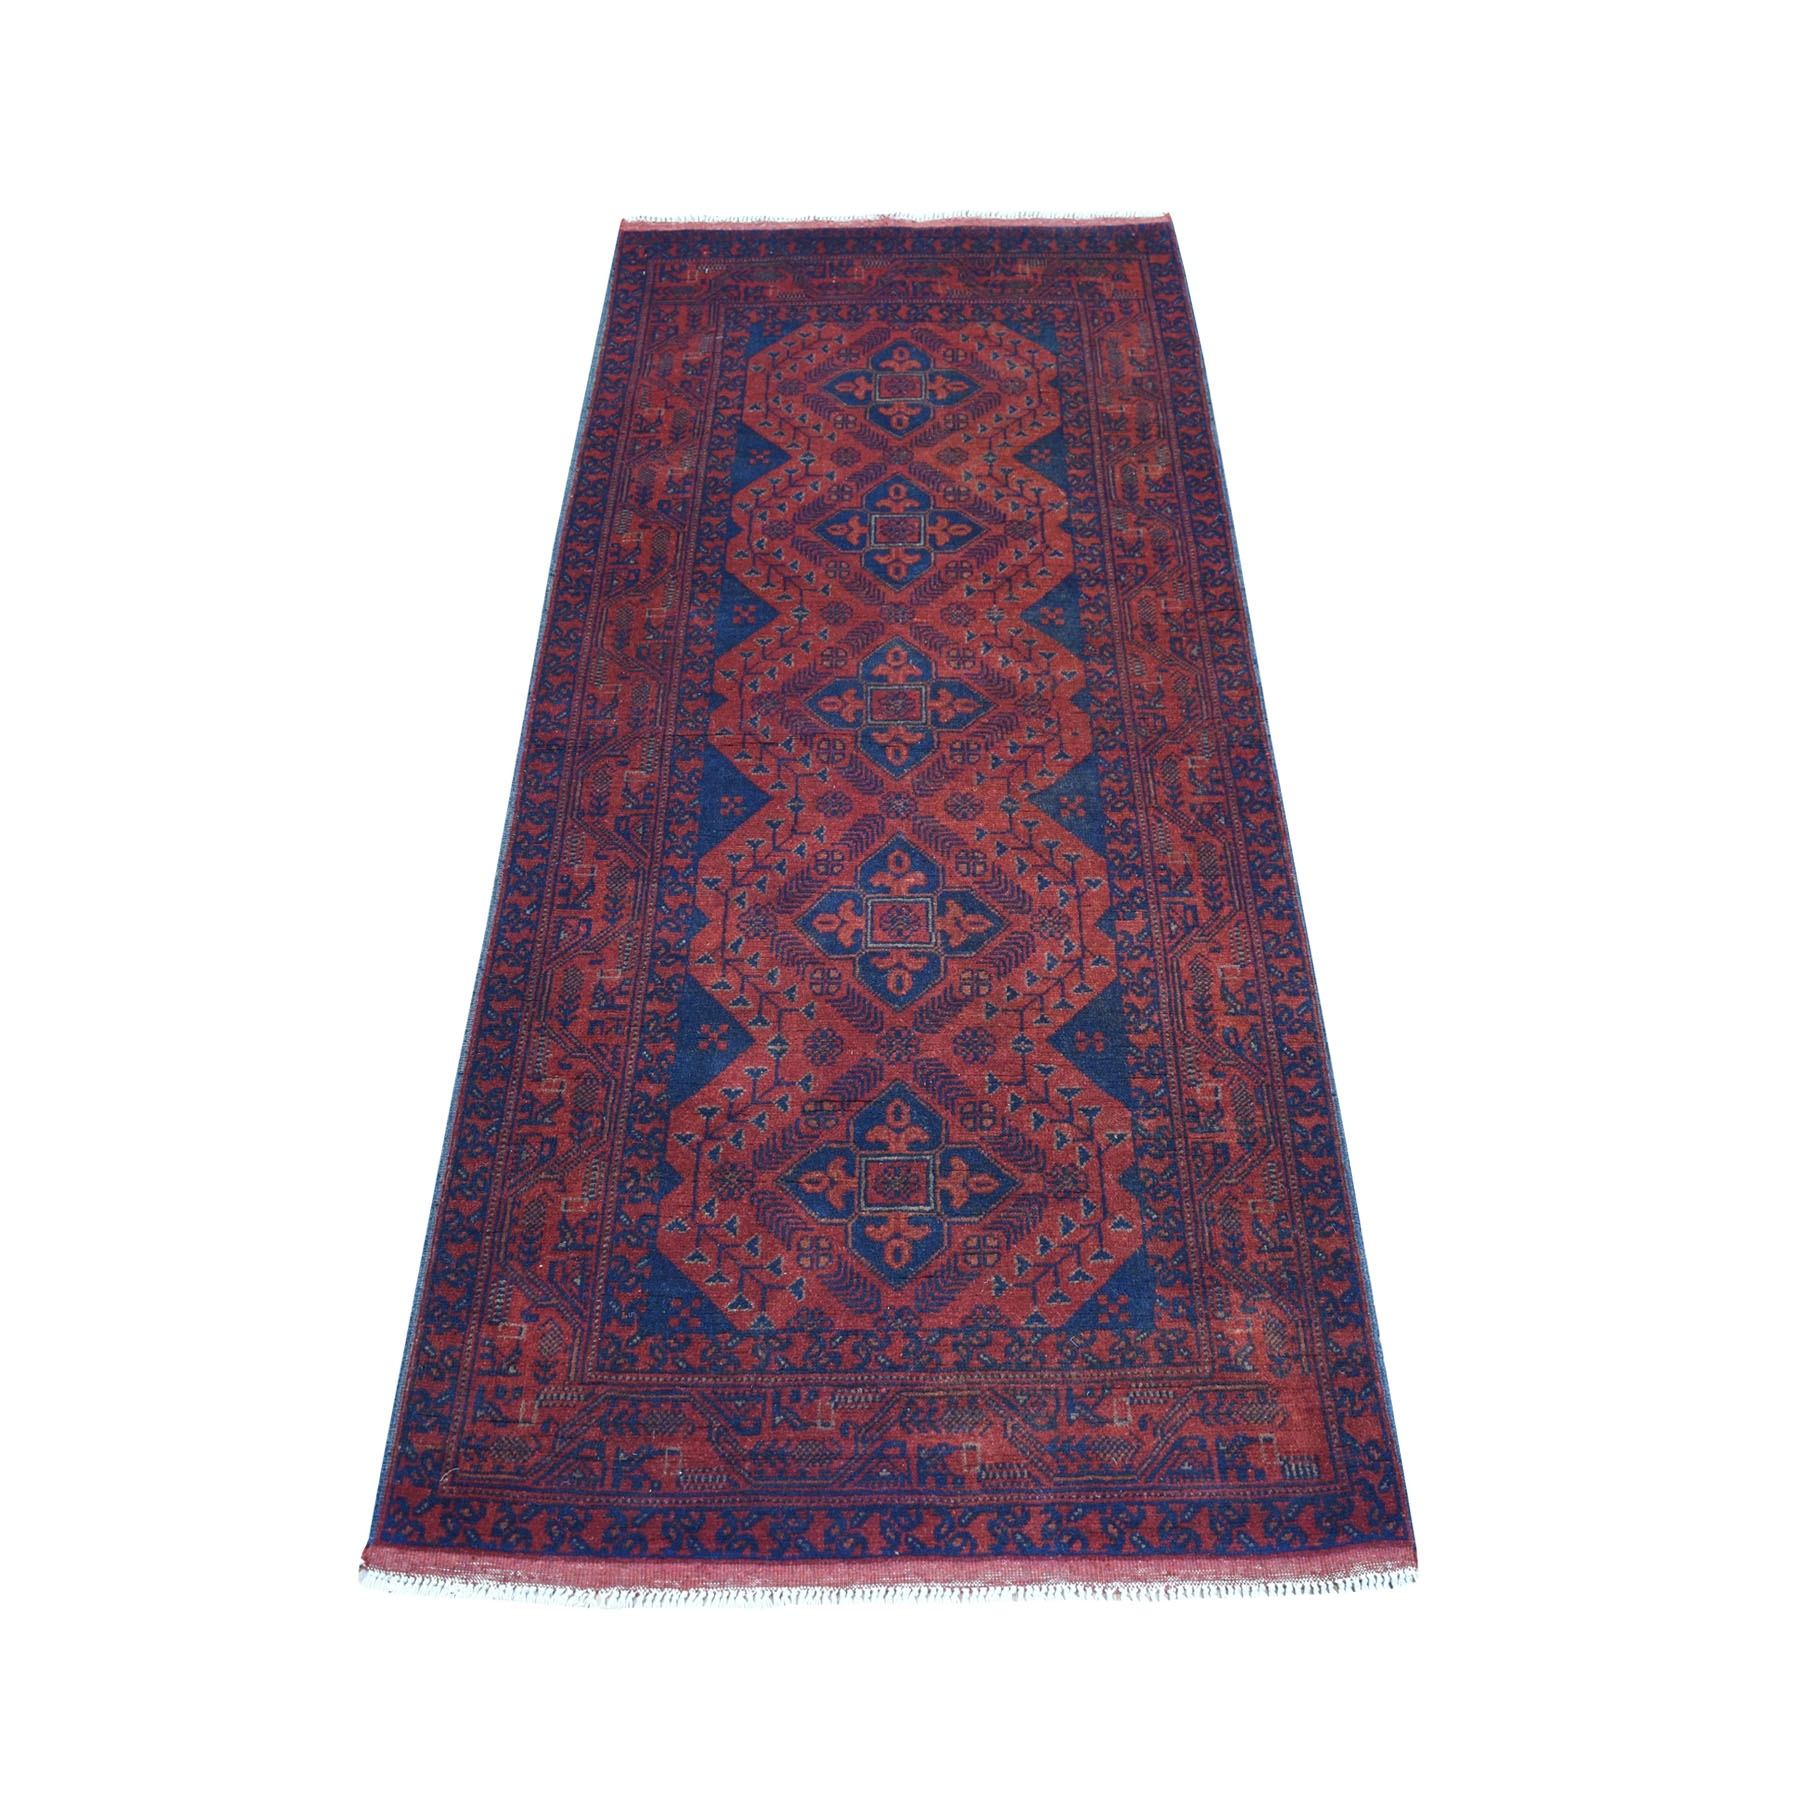 "2'9""X6'3"" Deep And Saturated Red Geometric Afghan Andkhoy Pure Wool Runner Hand Knotted Oriental Rug moaece00"